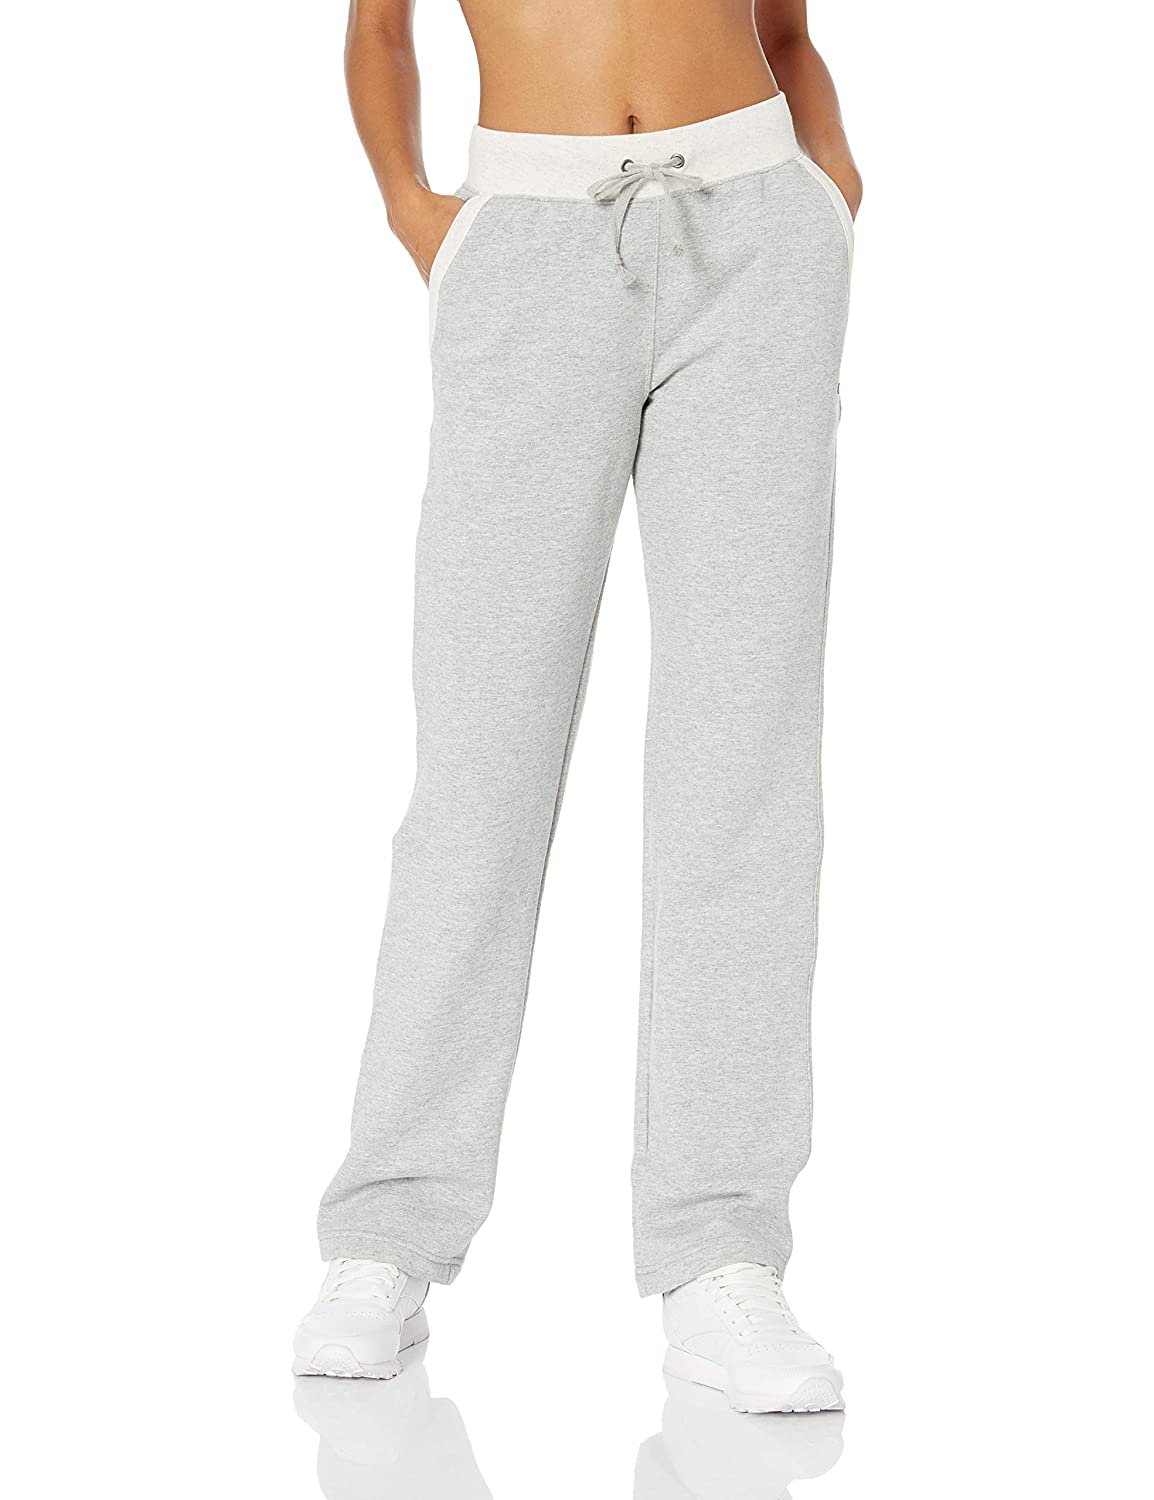 c4170a0ed46f0 Champion Women s Fleece Open Bottom Pant at Amazon Women s Clothing store